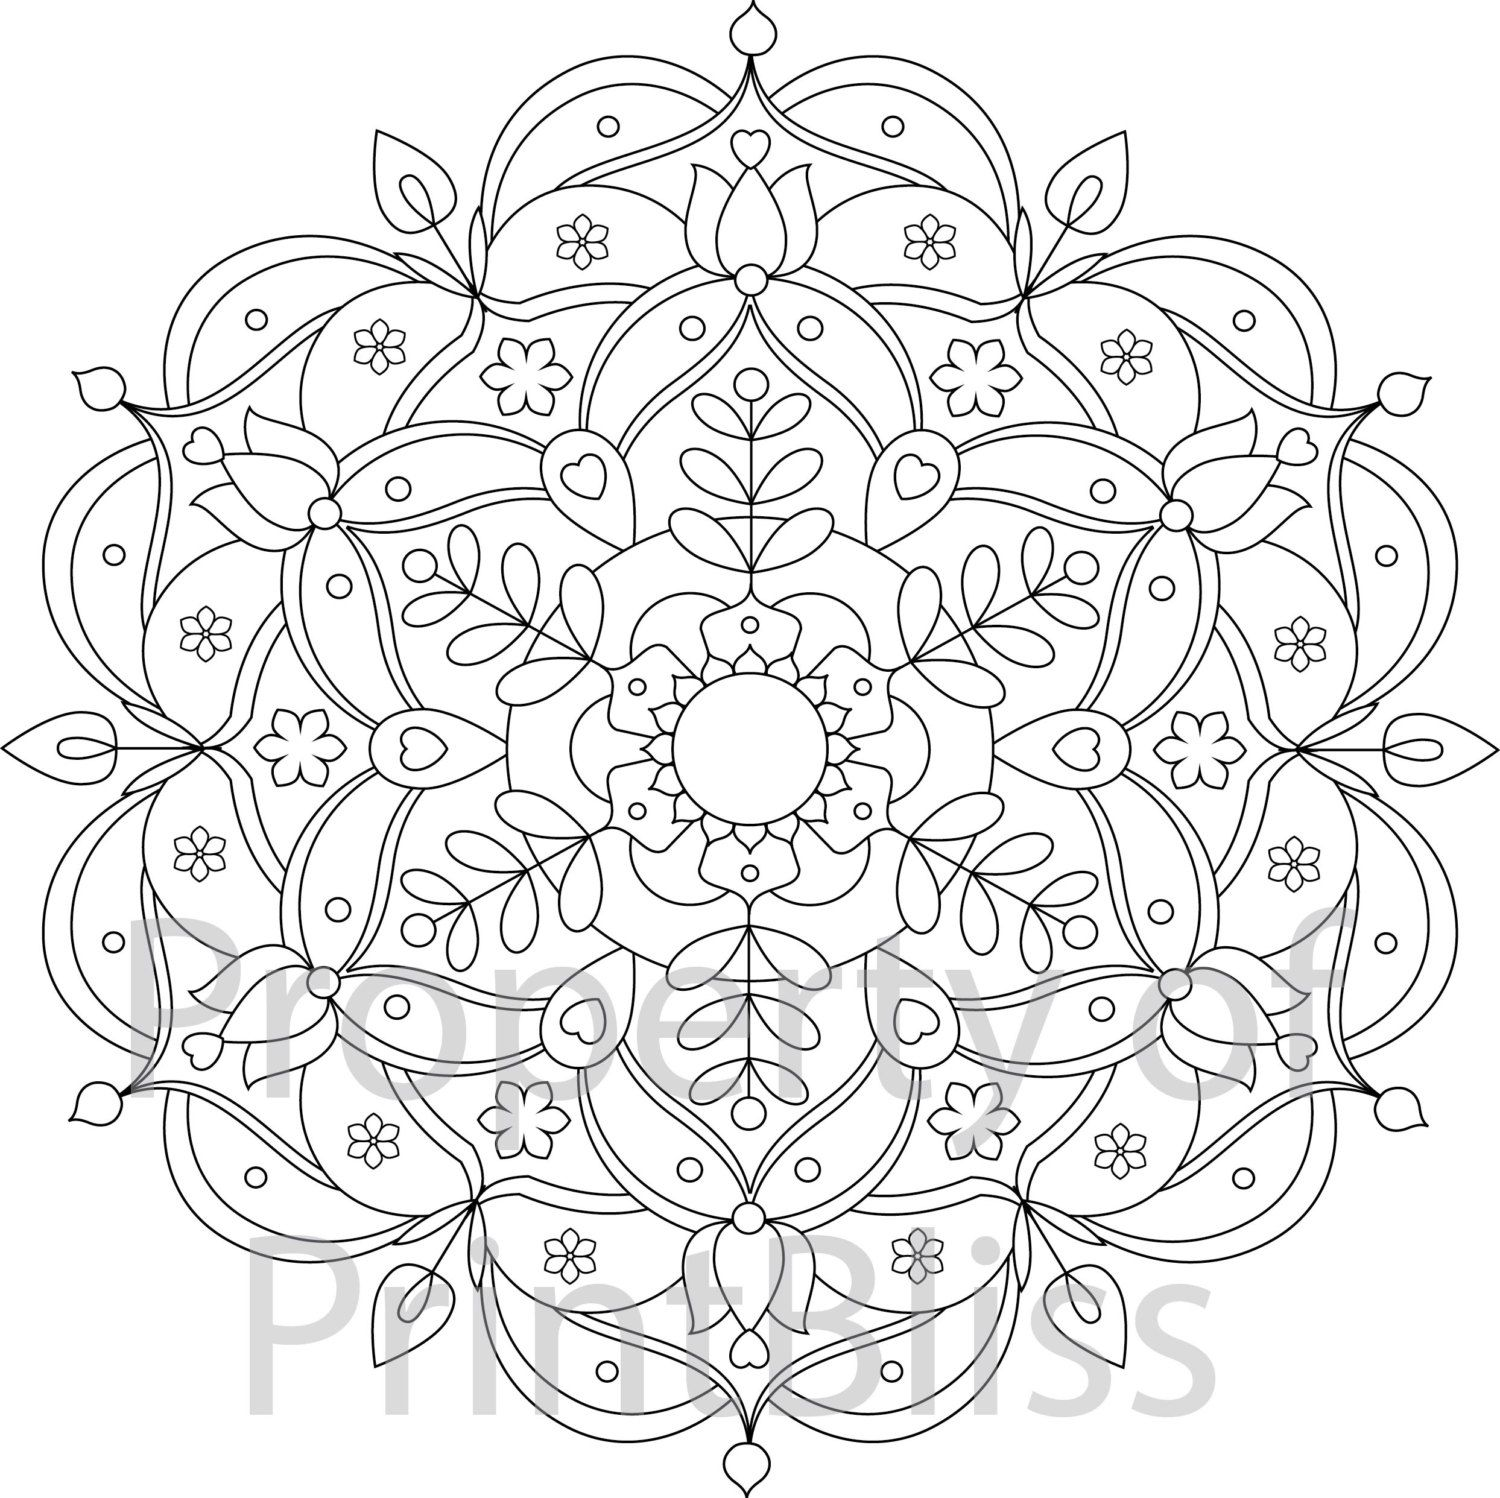 28 Flower Mandala printable coloring page by PrintBliss